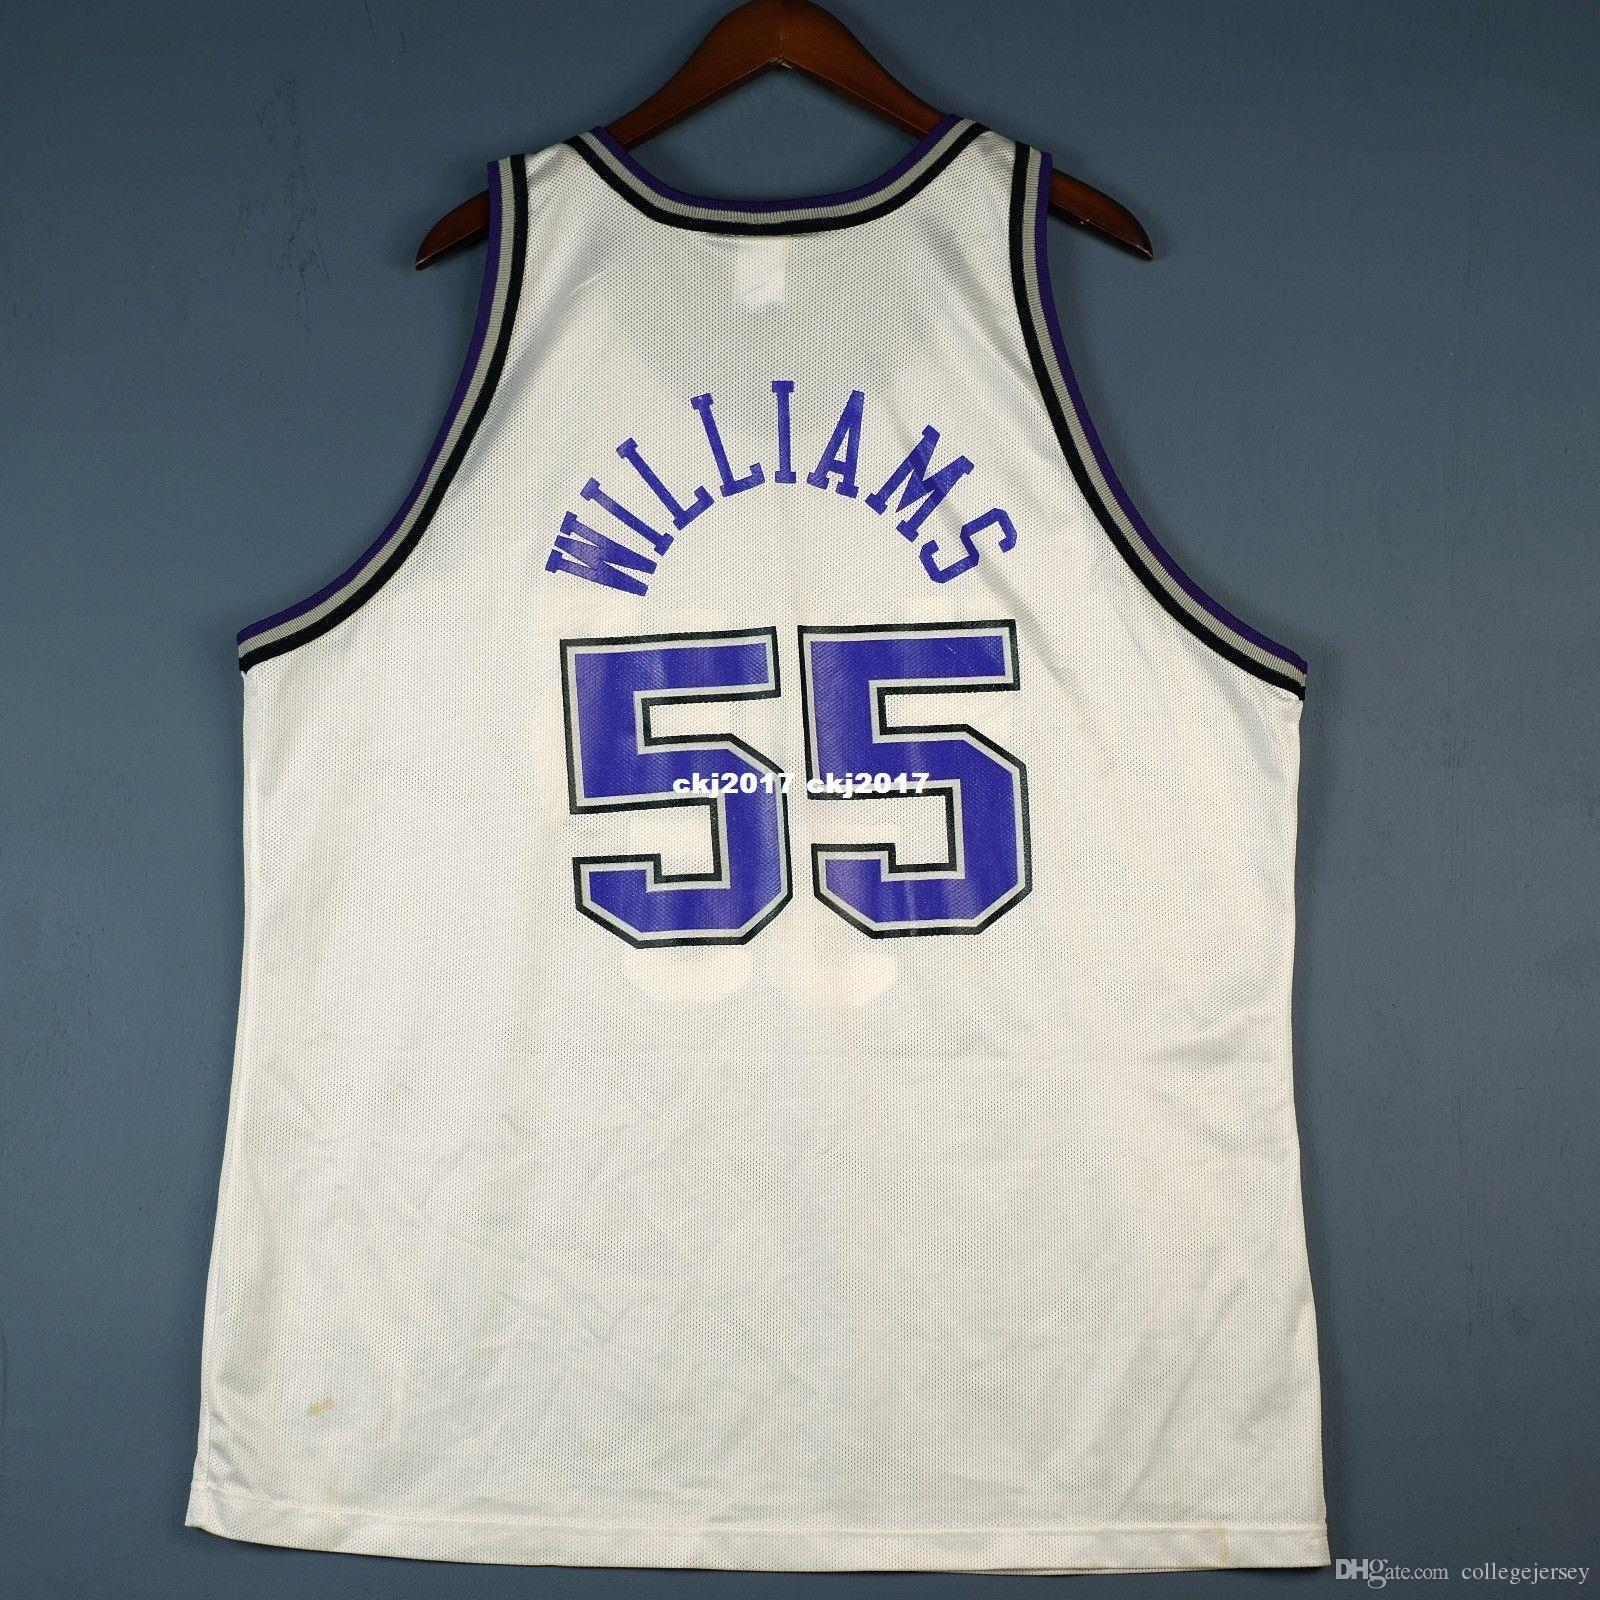 100% cousu Jason Williams # 55 champion cousu maillot pour homme blanc taille XS-6XL maillots de basket-ball cousu Ncaa